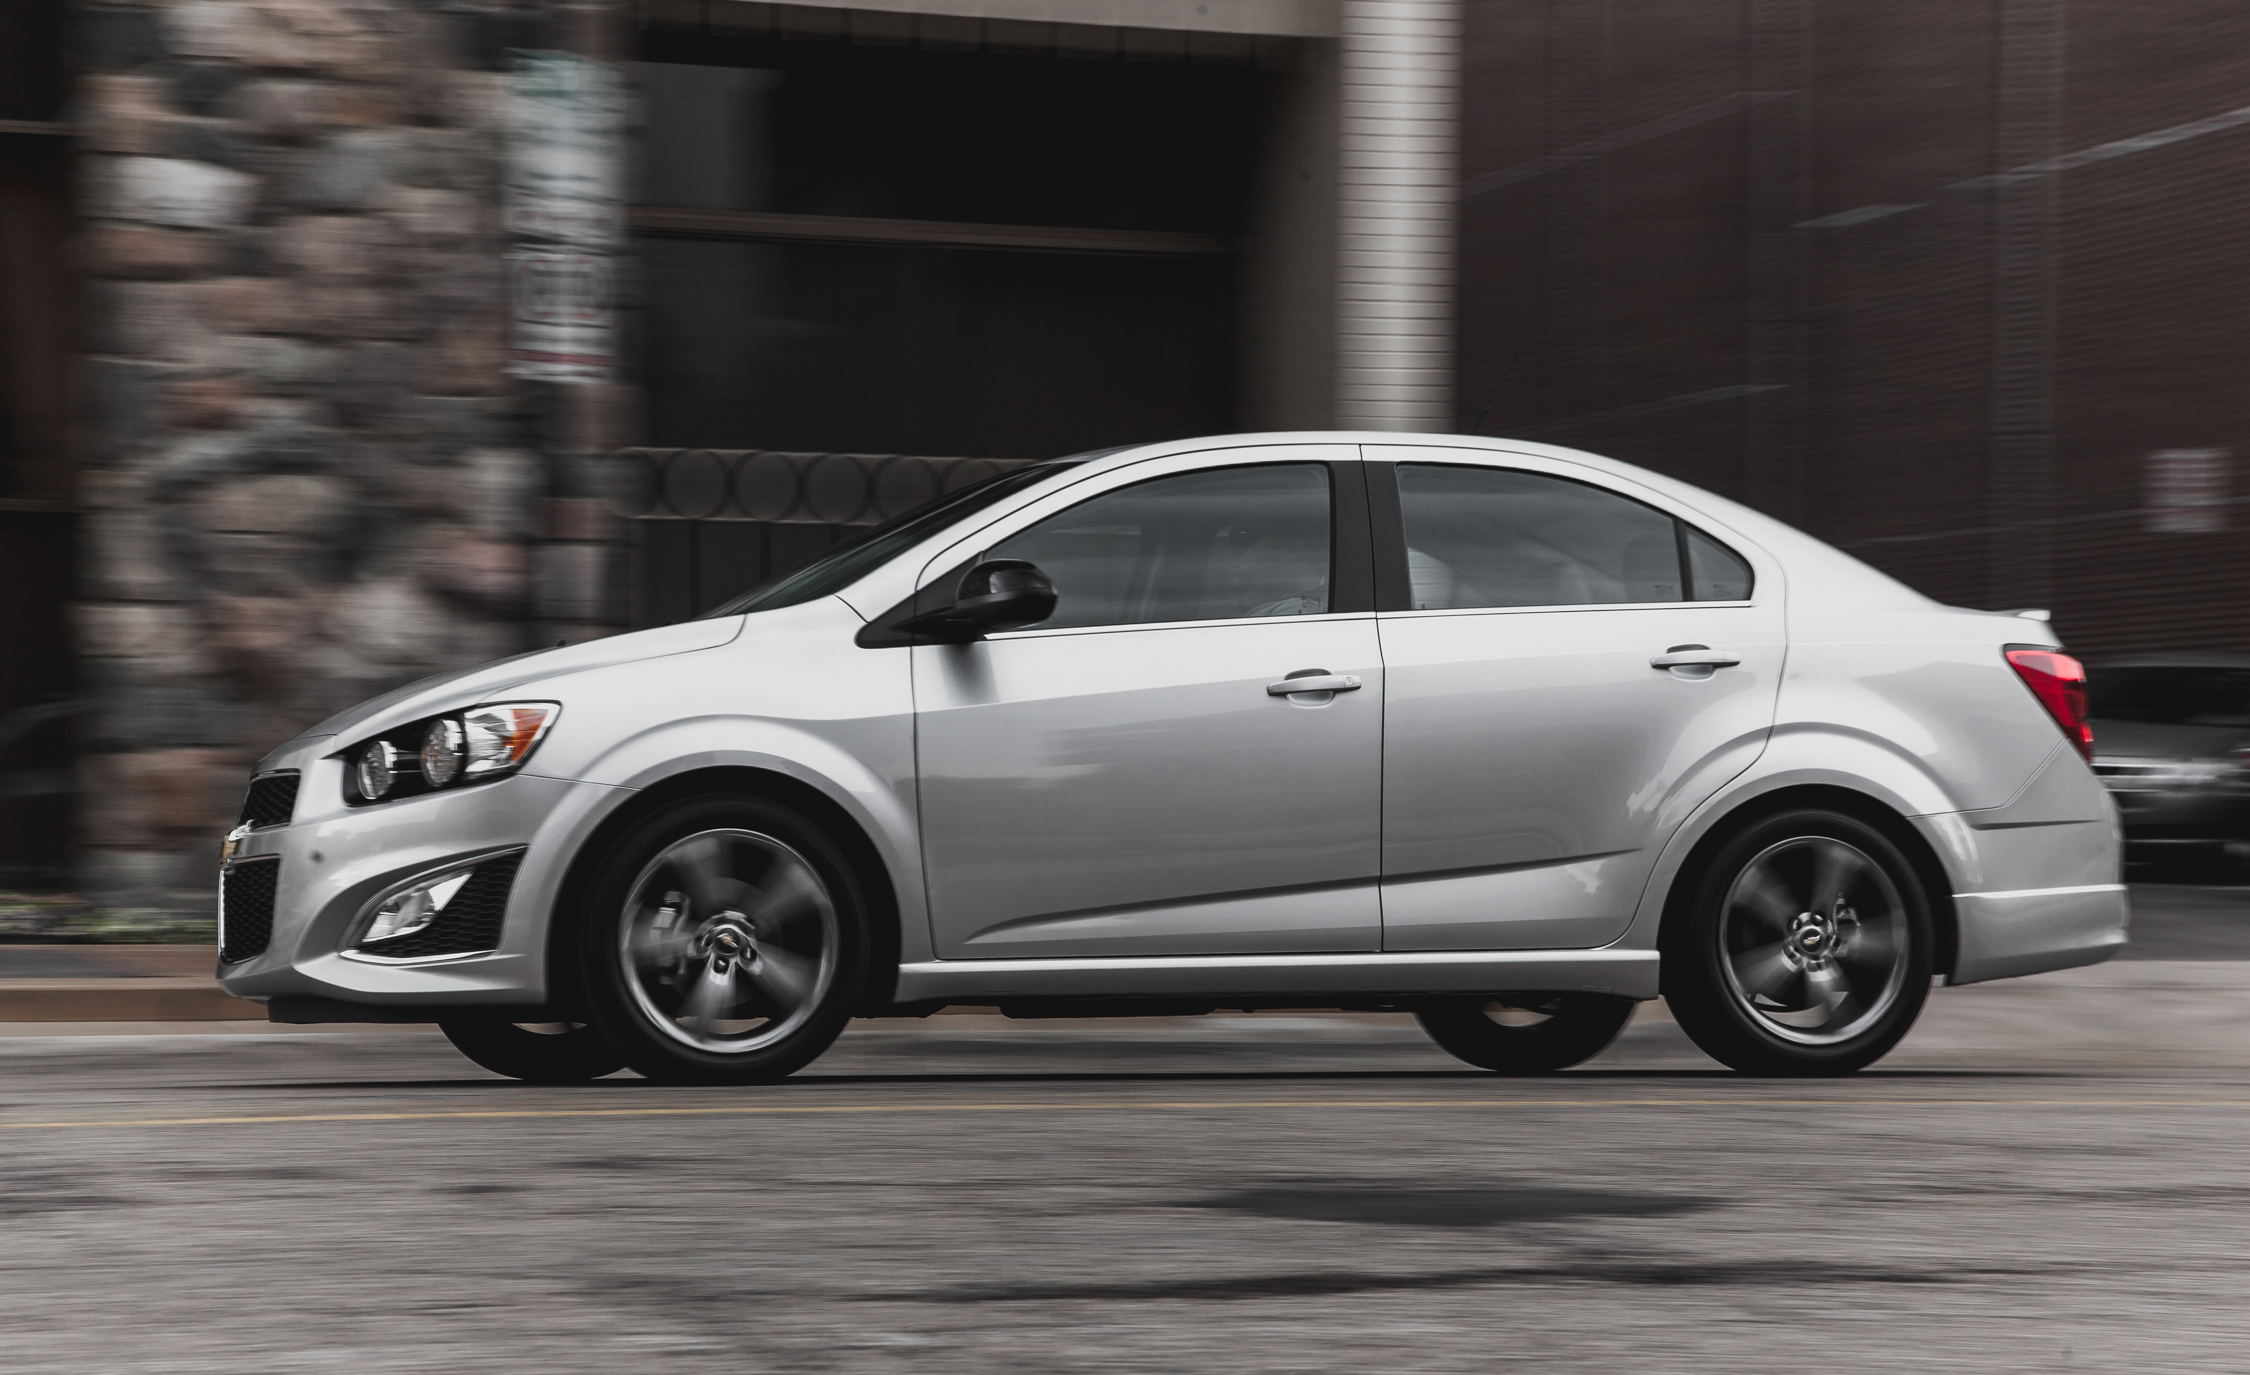 2014 Chevrolet Sonic RS Sedan (Photo 16 of 27)